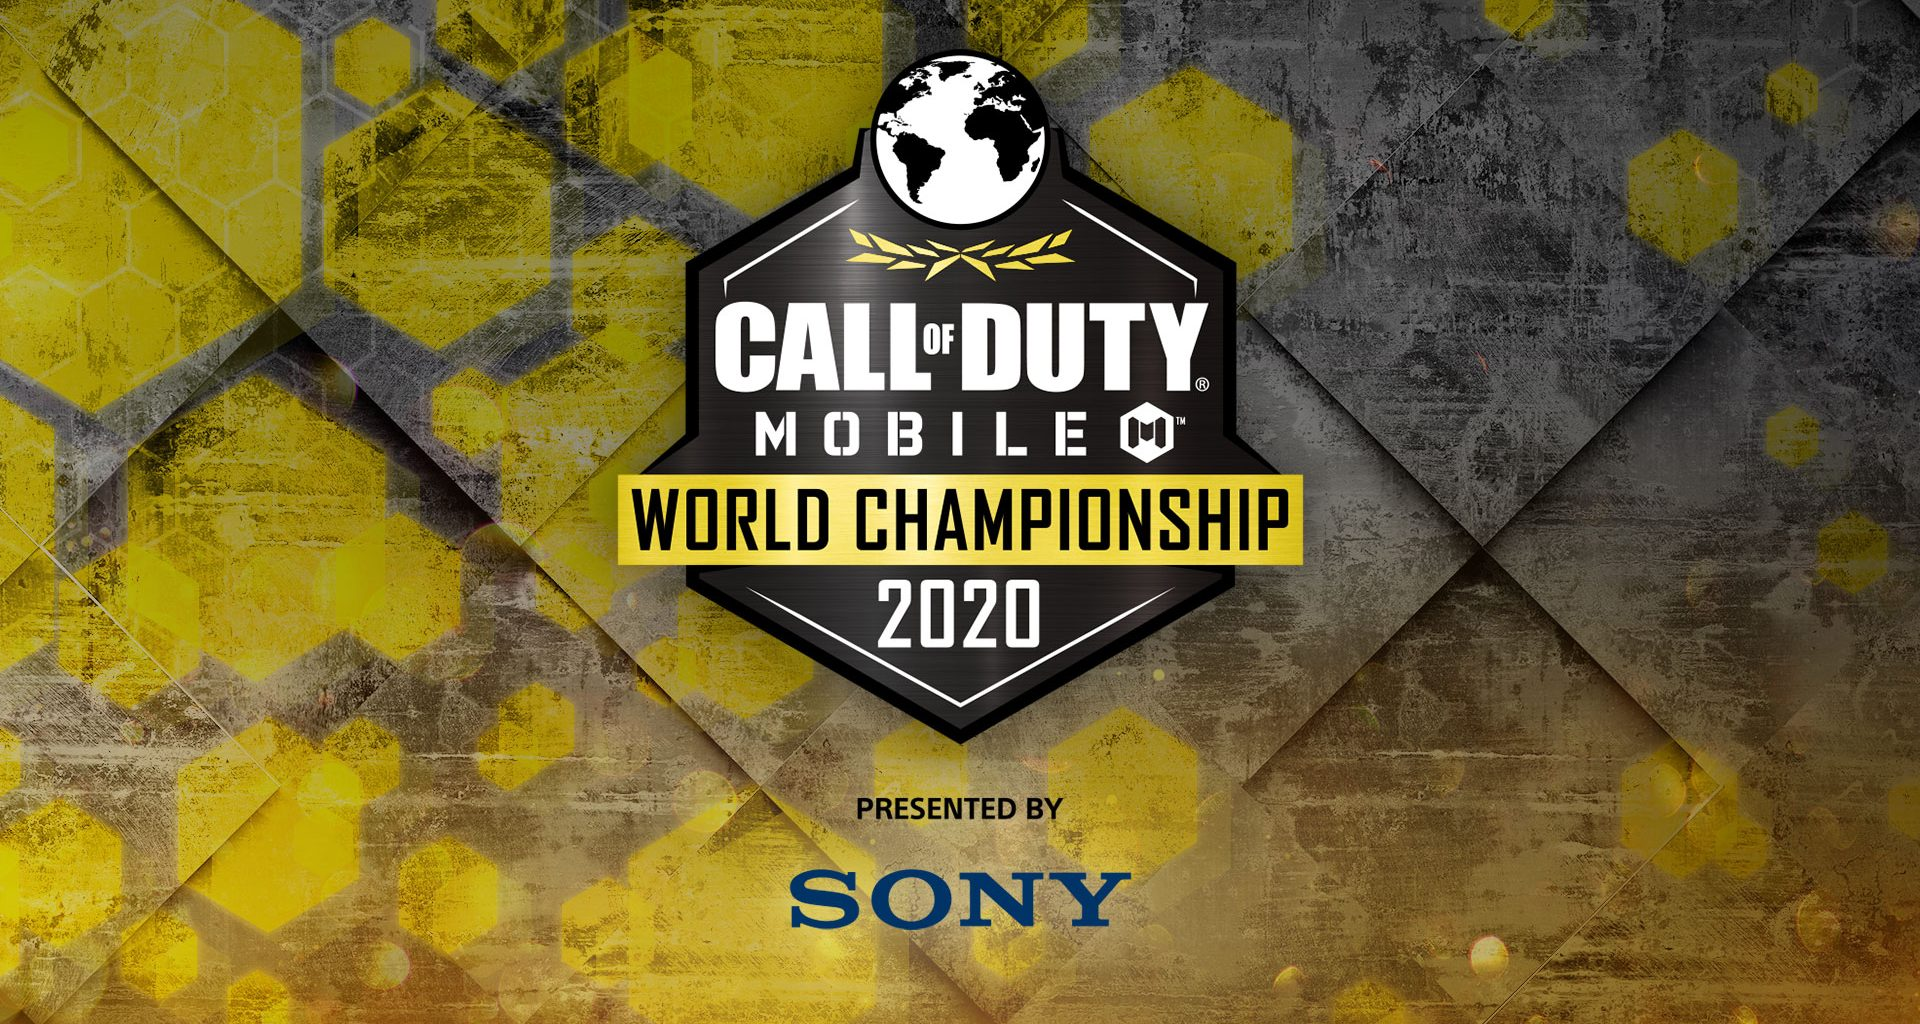 CODM Esports Tout Call of Duty Mobile World Championship 2020